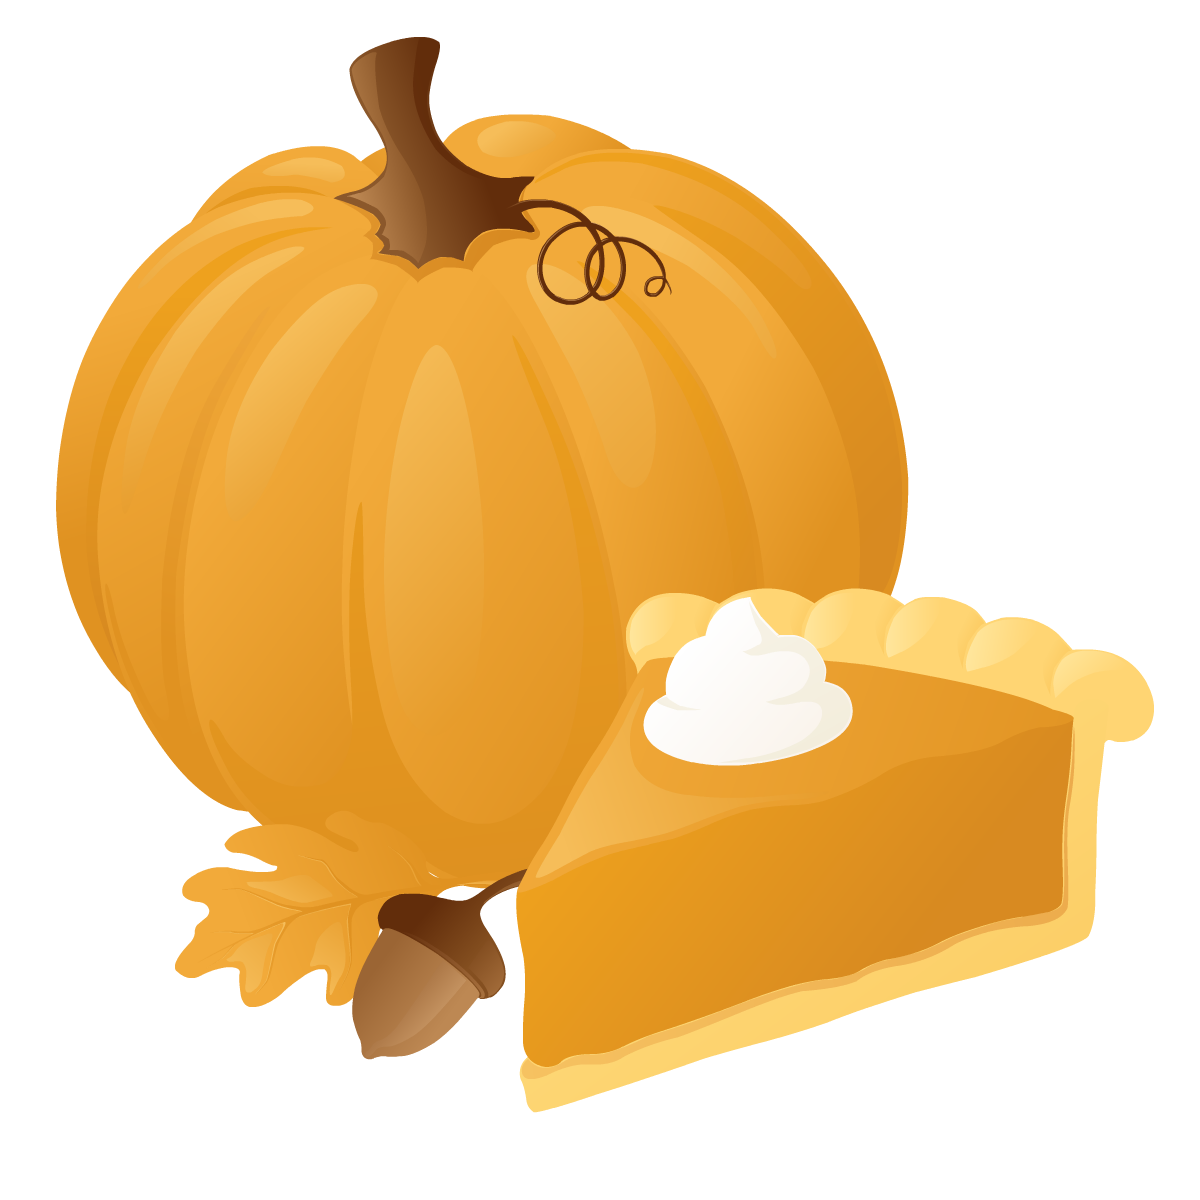 1200x1200 Pumpkin Pie Clipart 3